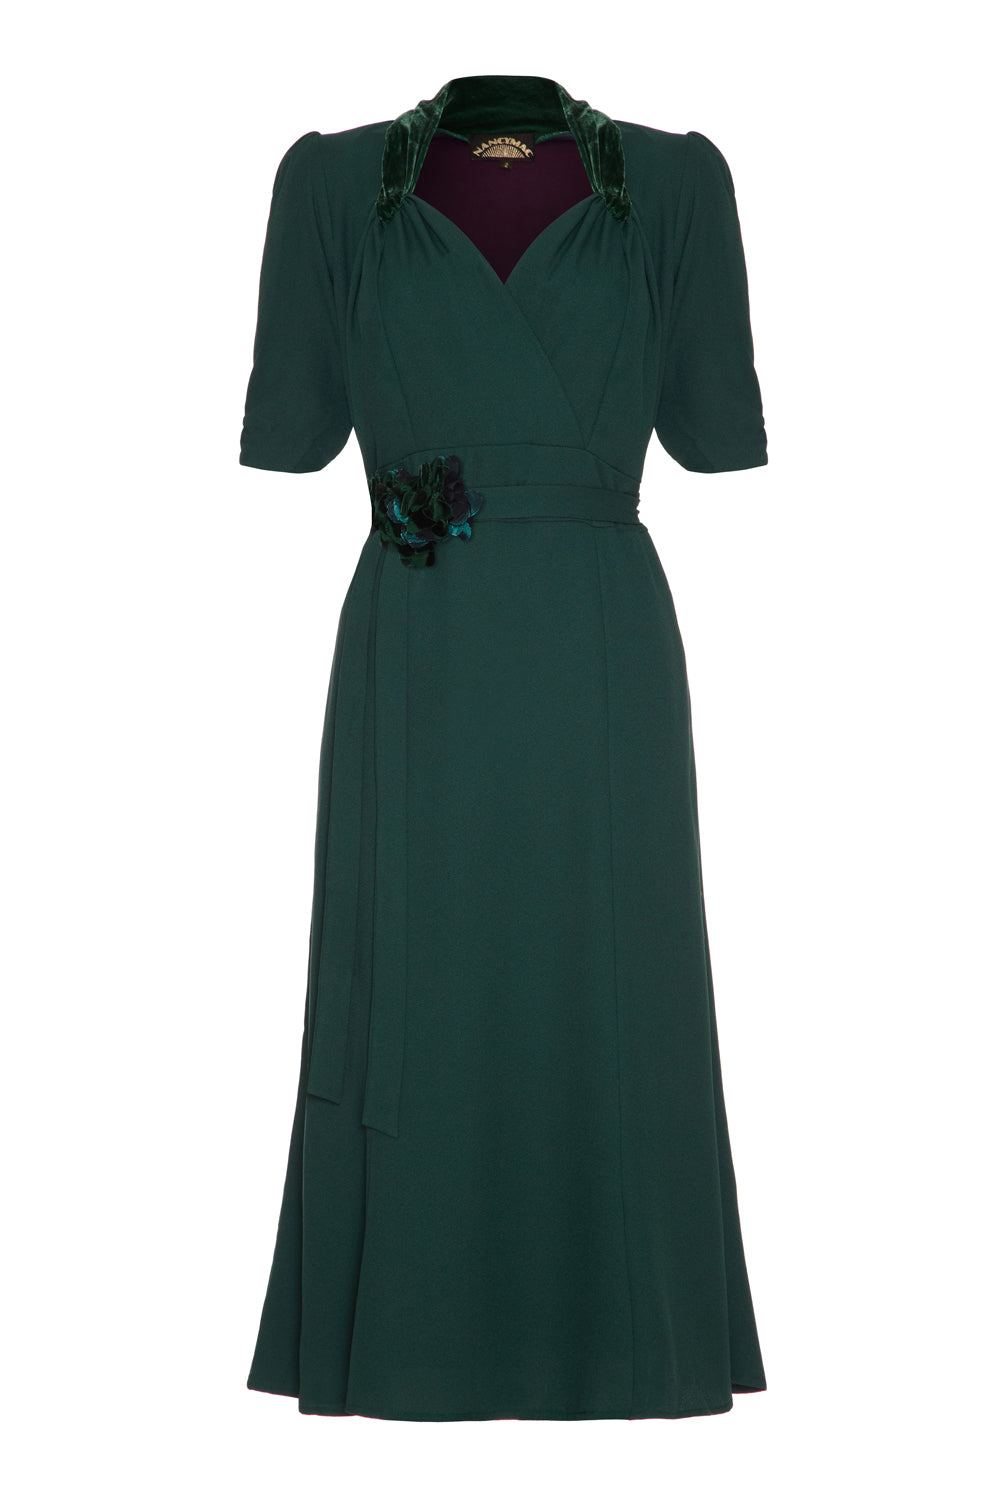 Eliza Dress in Emerald Crepe